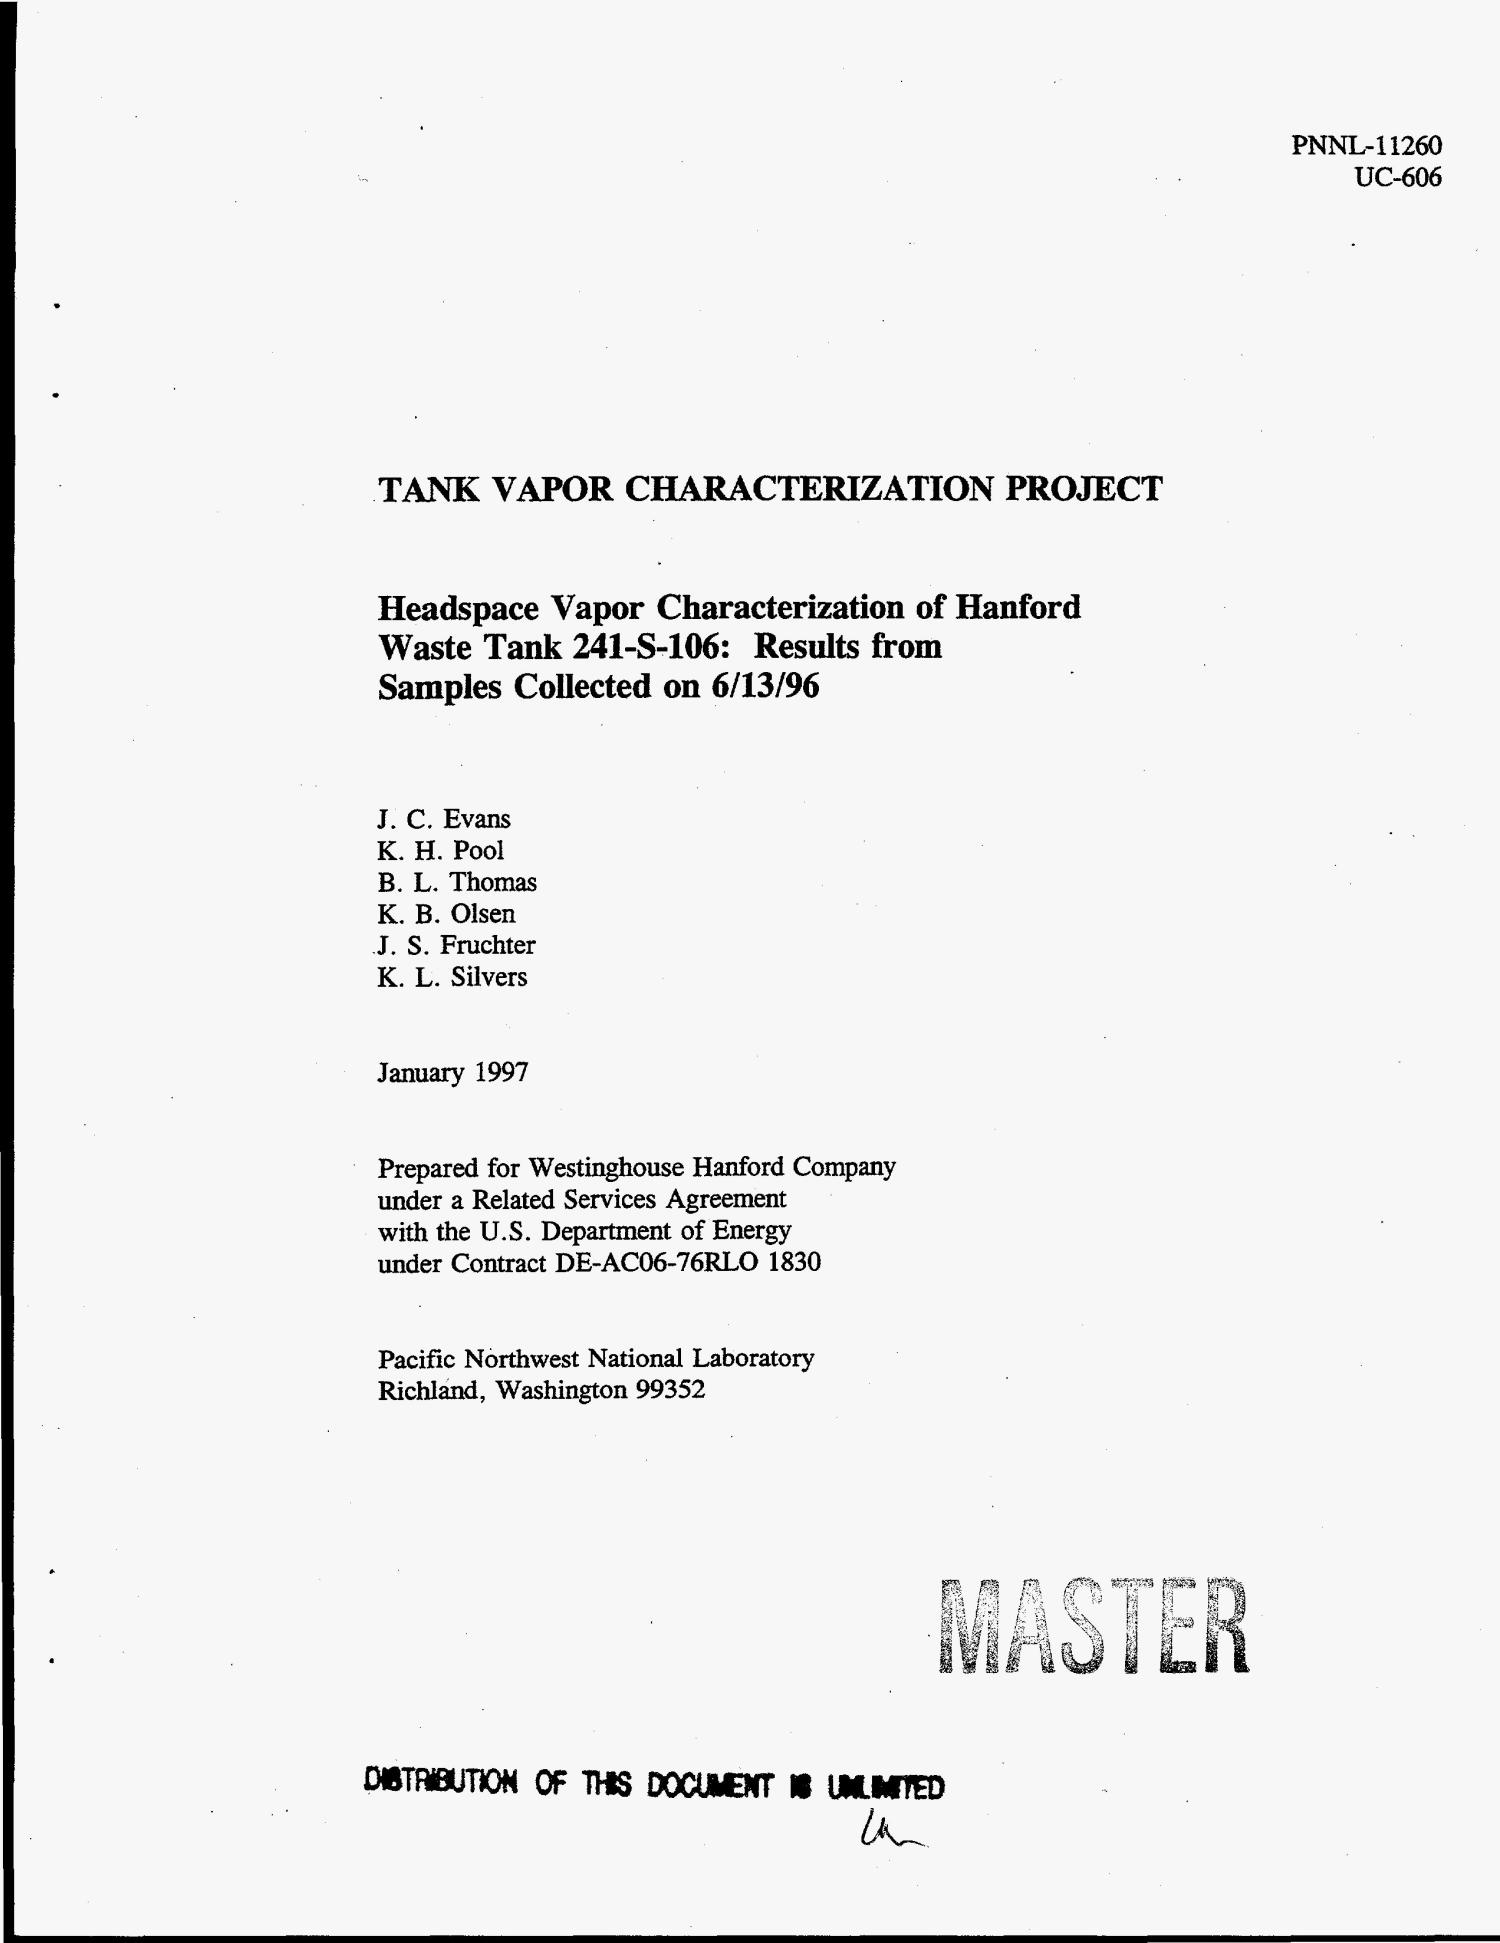 Headspace Vapor Characterization Of Hanford Waste Tank 241 S 106